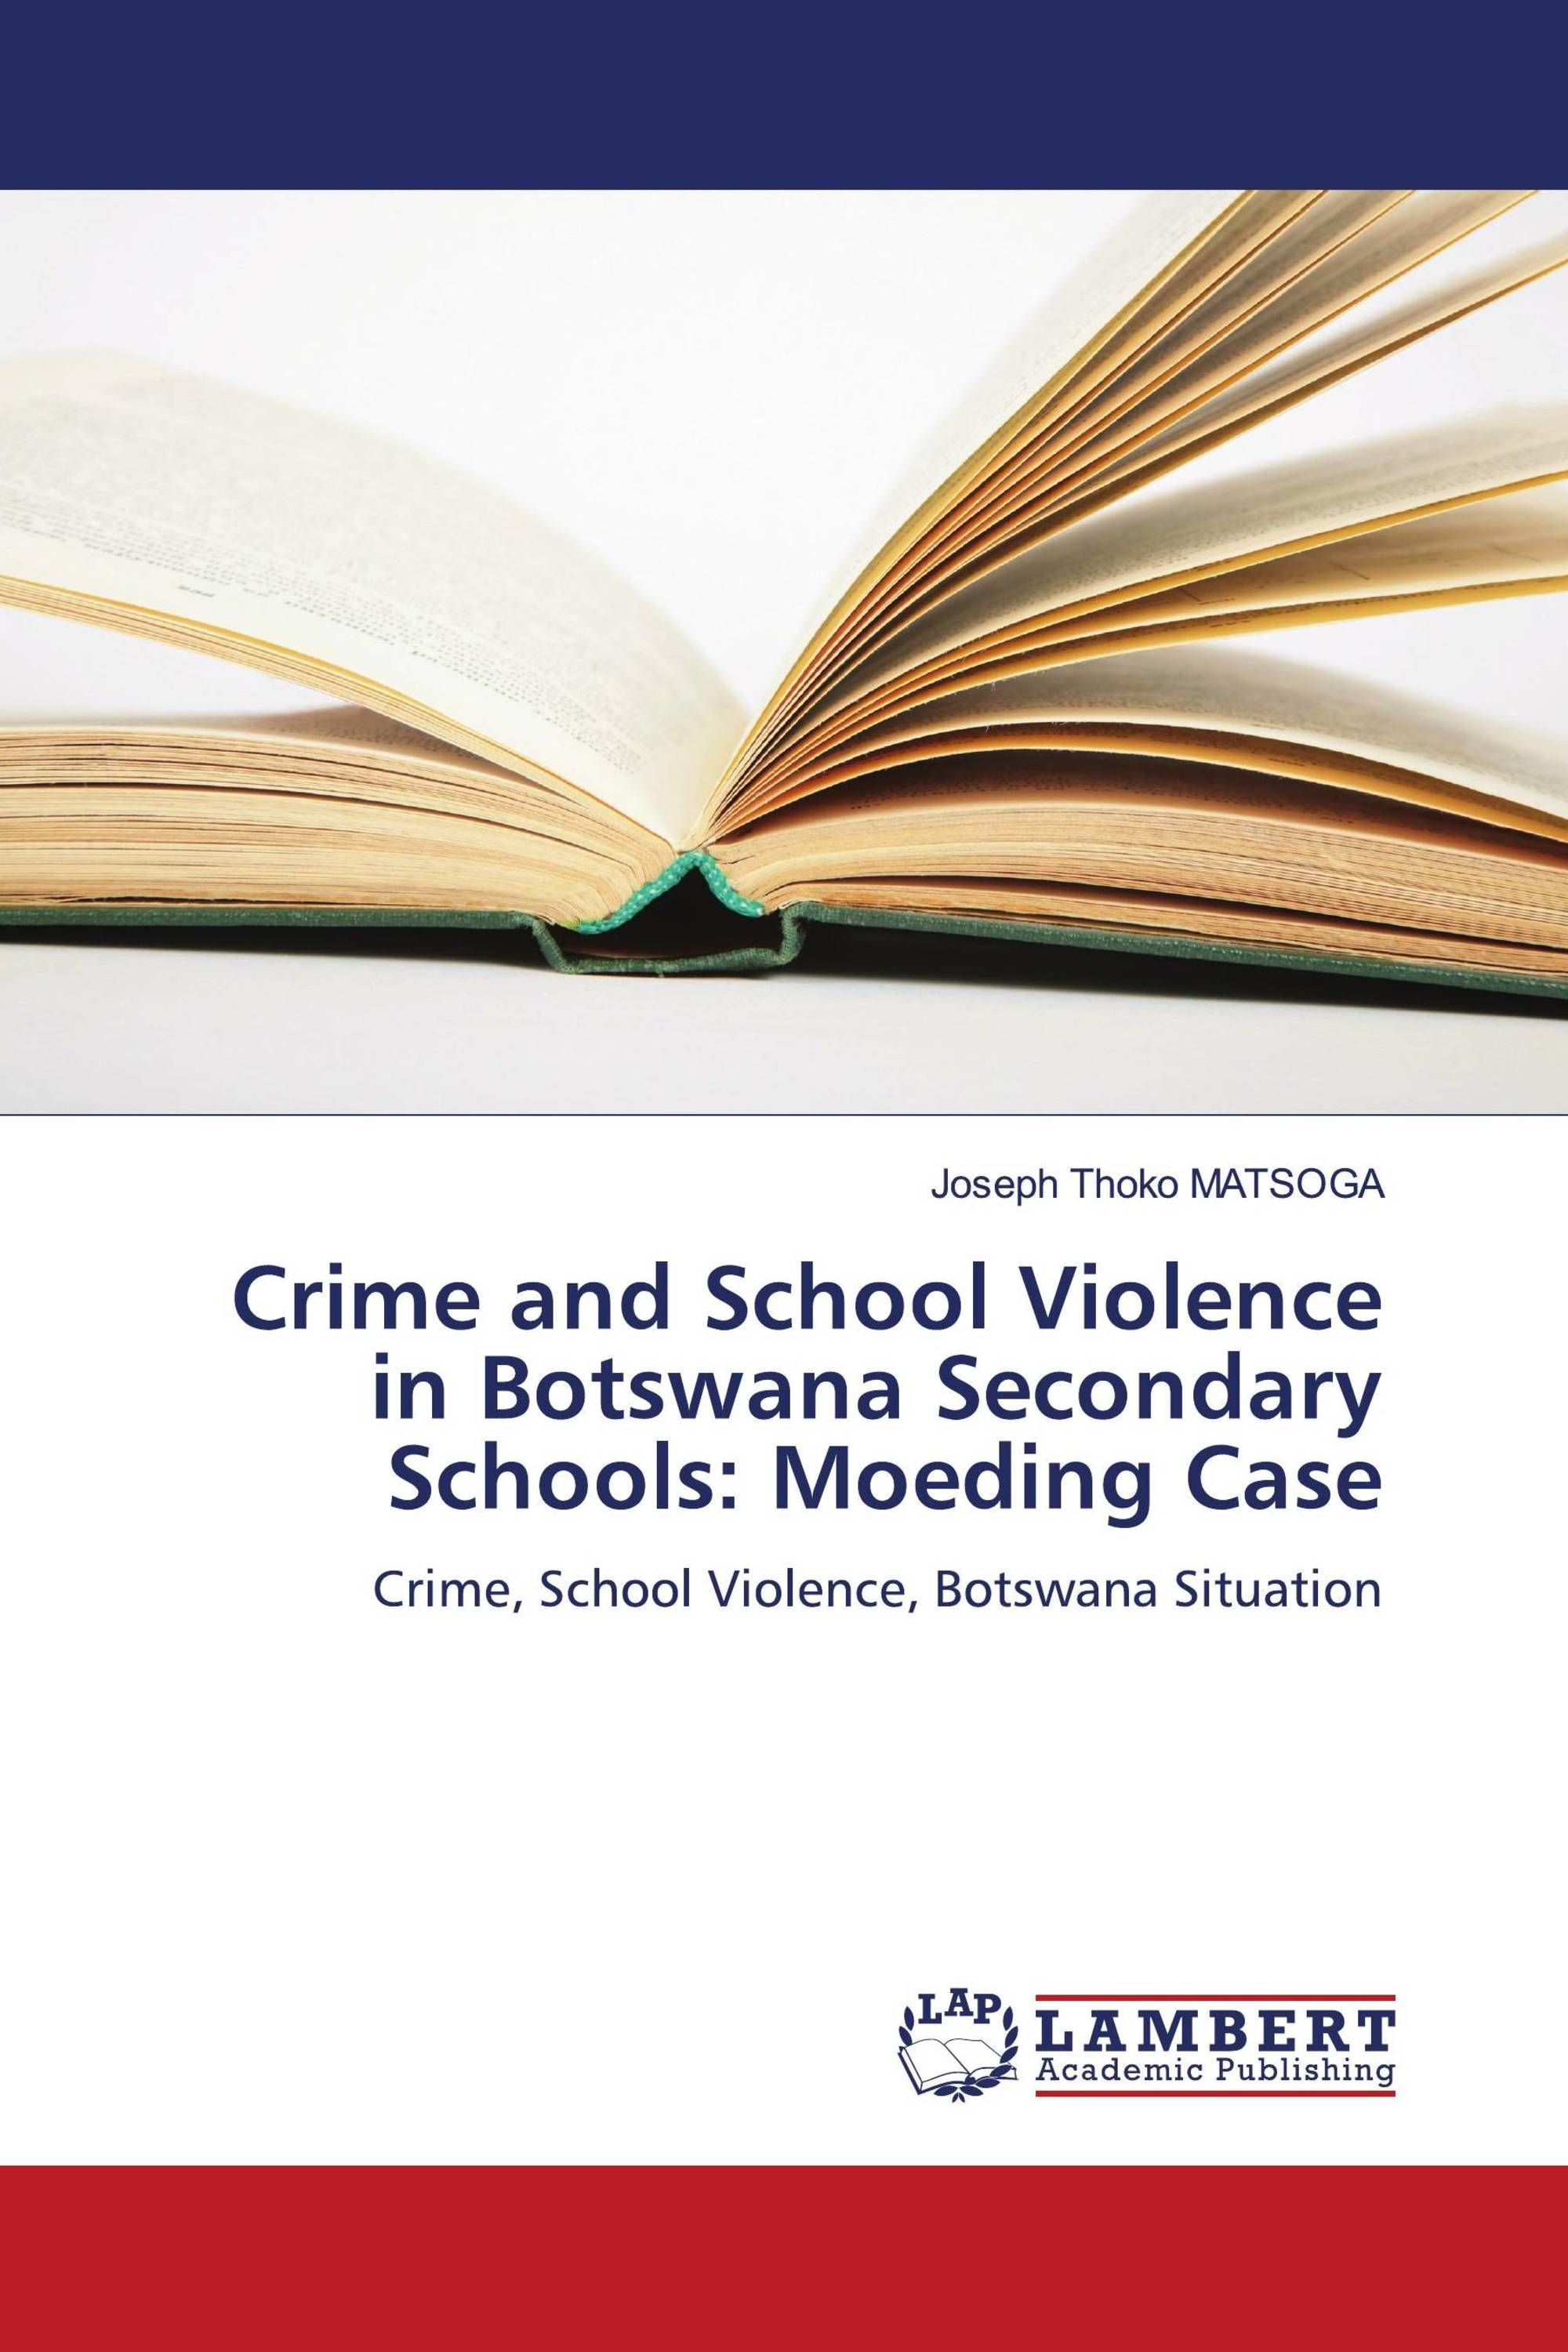 school violence research paper thesis If you are looking for stunning high school research paper topics, follow the link right away you'll find fifty awesome topics for your research.